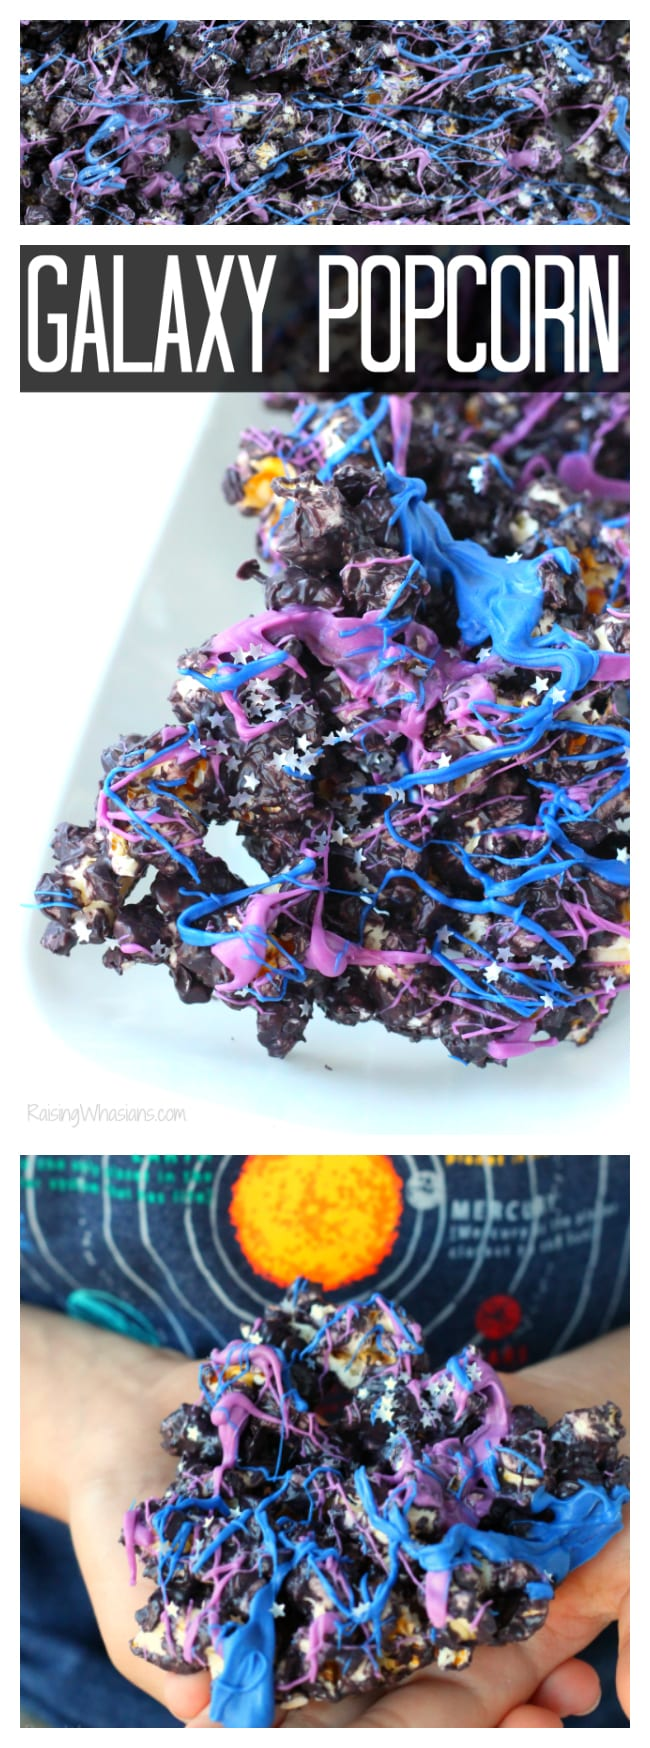 Galaxy Popcorn and Ice Age: Collision Course Movie Night | Easy galaxy snack idea for your next space themed party + Ice Age: Collision Course Blu-Ray Space themed movie night popcorn recipe - #Recipe #FamilyMovieNight #Snack